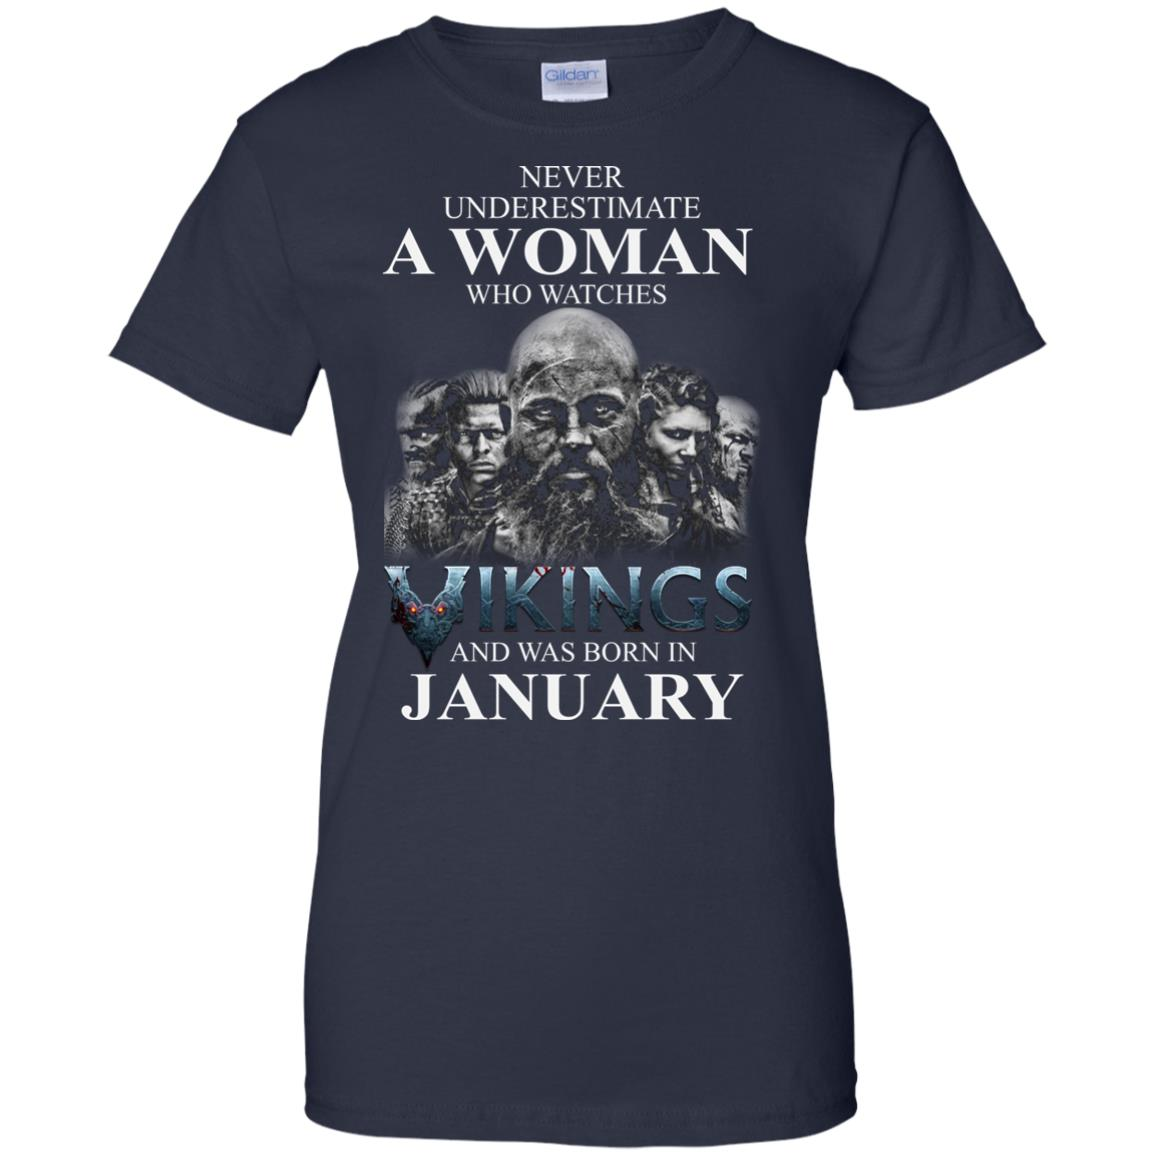 image 1362 - Never Underestimate A woman who watches Vikings and was born in January shirt